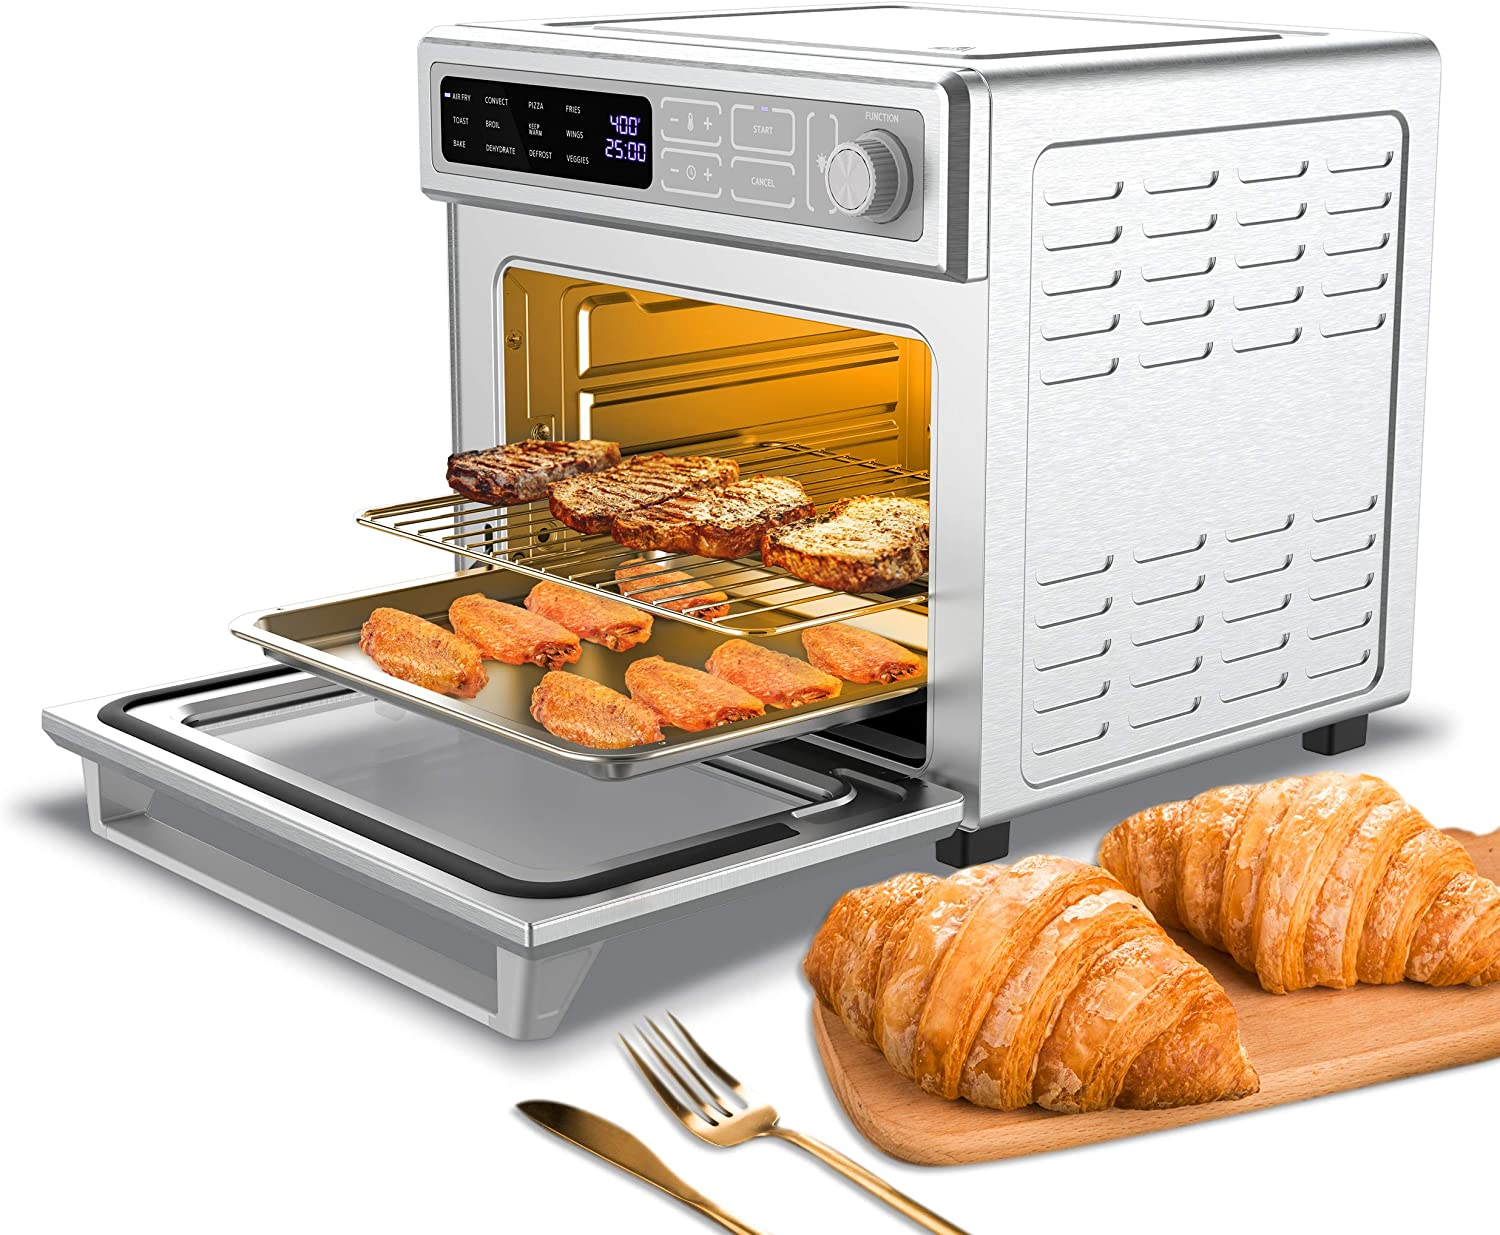 CIARRA CATOSEC01 12-in-1 Toaster Oven, Countertop Convection Oven, Air Fryer Oven with Digital Control, Large Capacity with 24L/25QT, 1700W, Stainless Steel